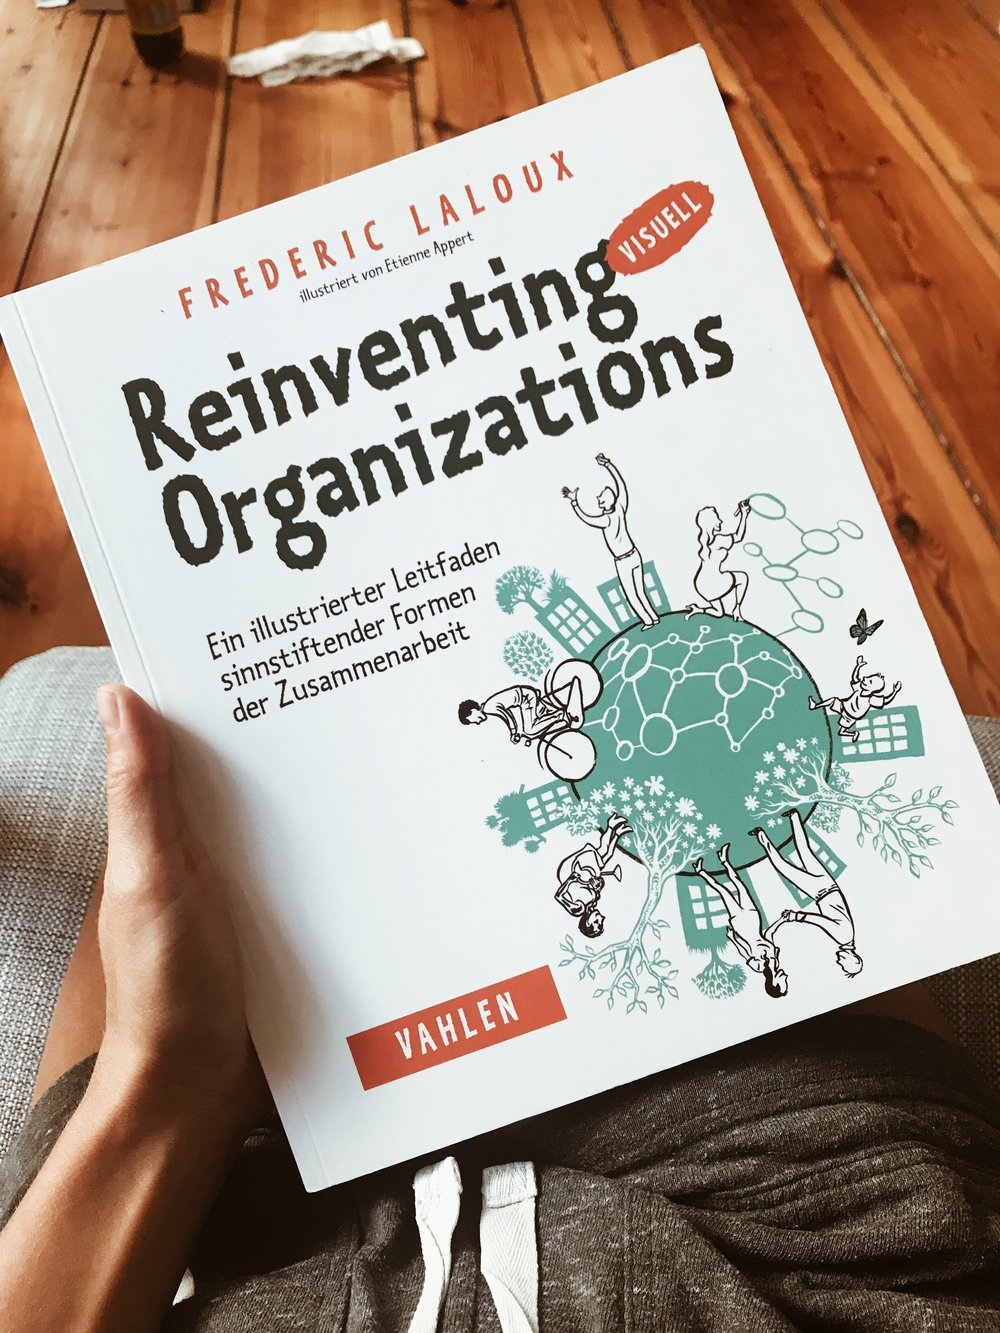 Reinventing Organizations  - by Frederic Laloux, Link to Product